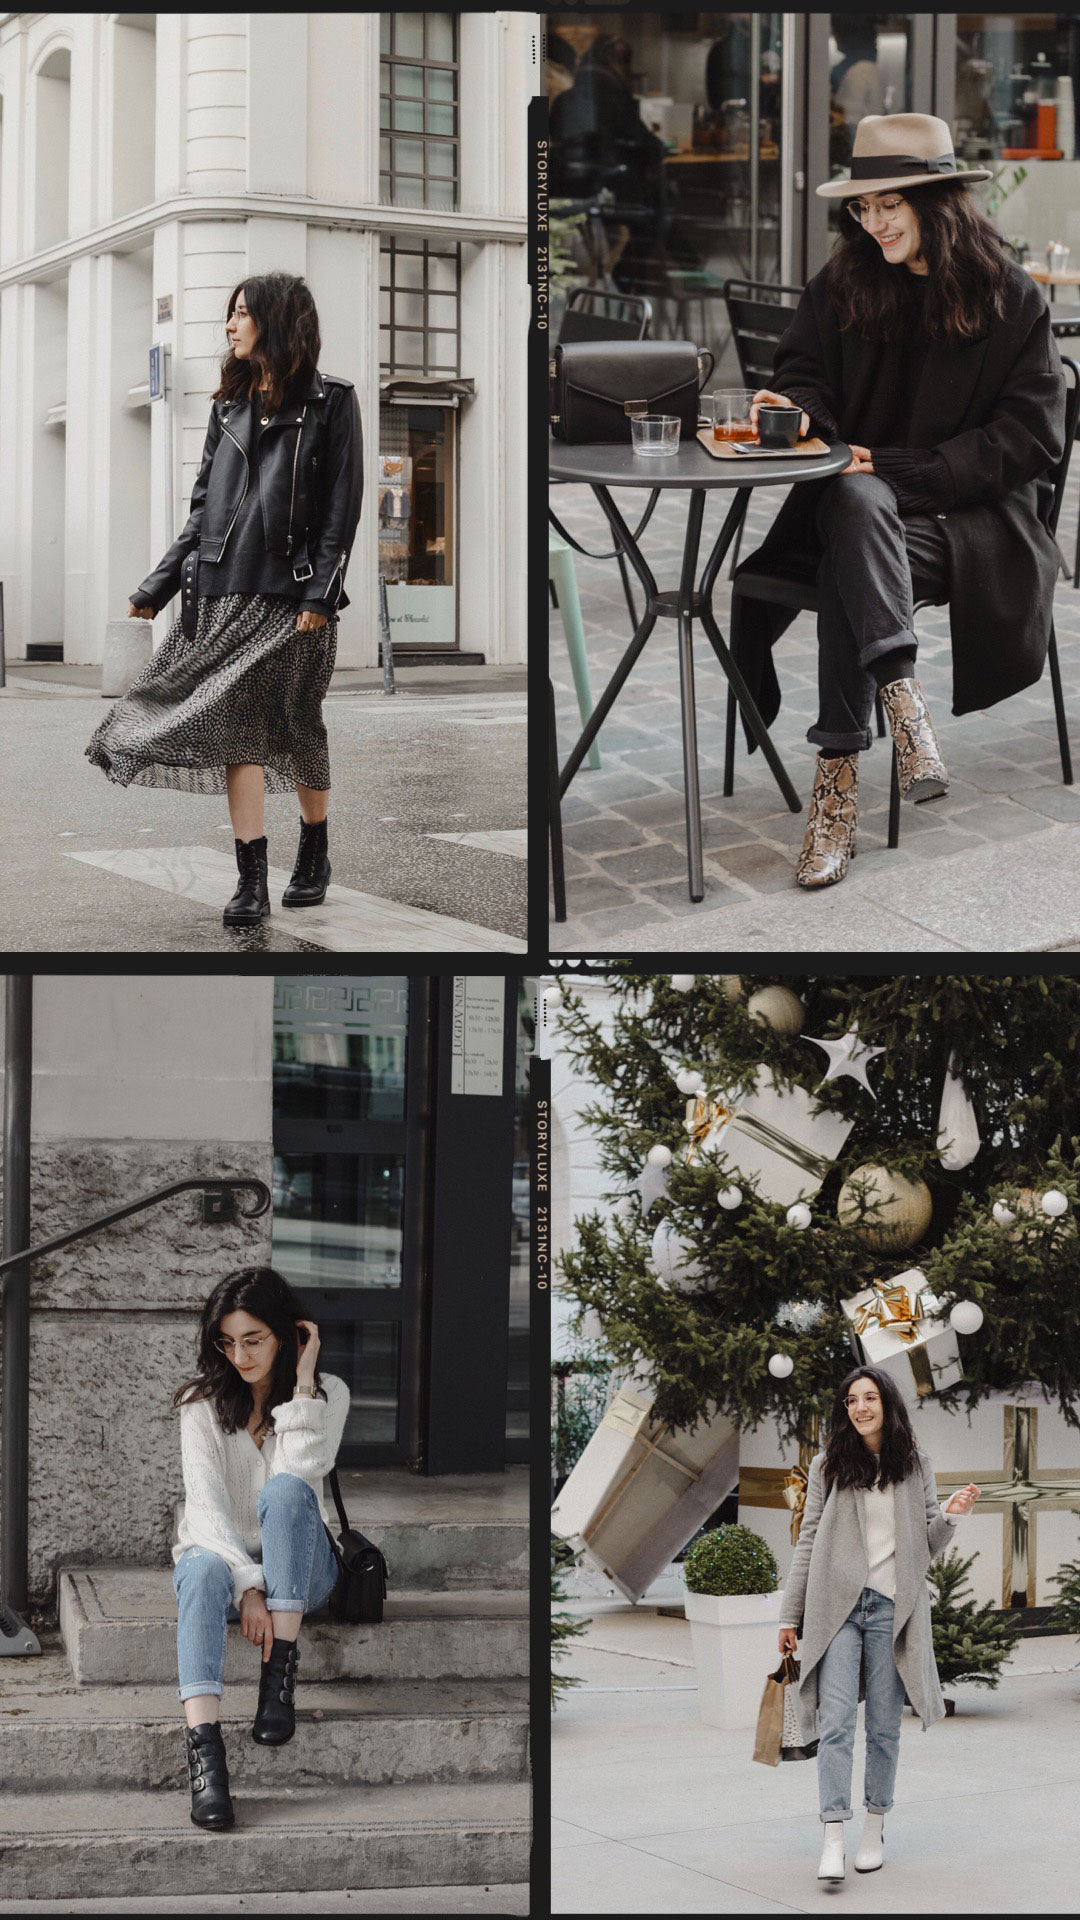 somethingtowear - lookbook et selections besson chaussures